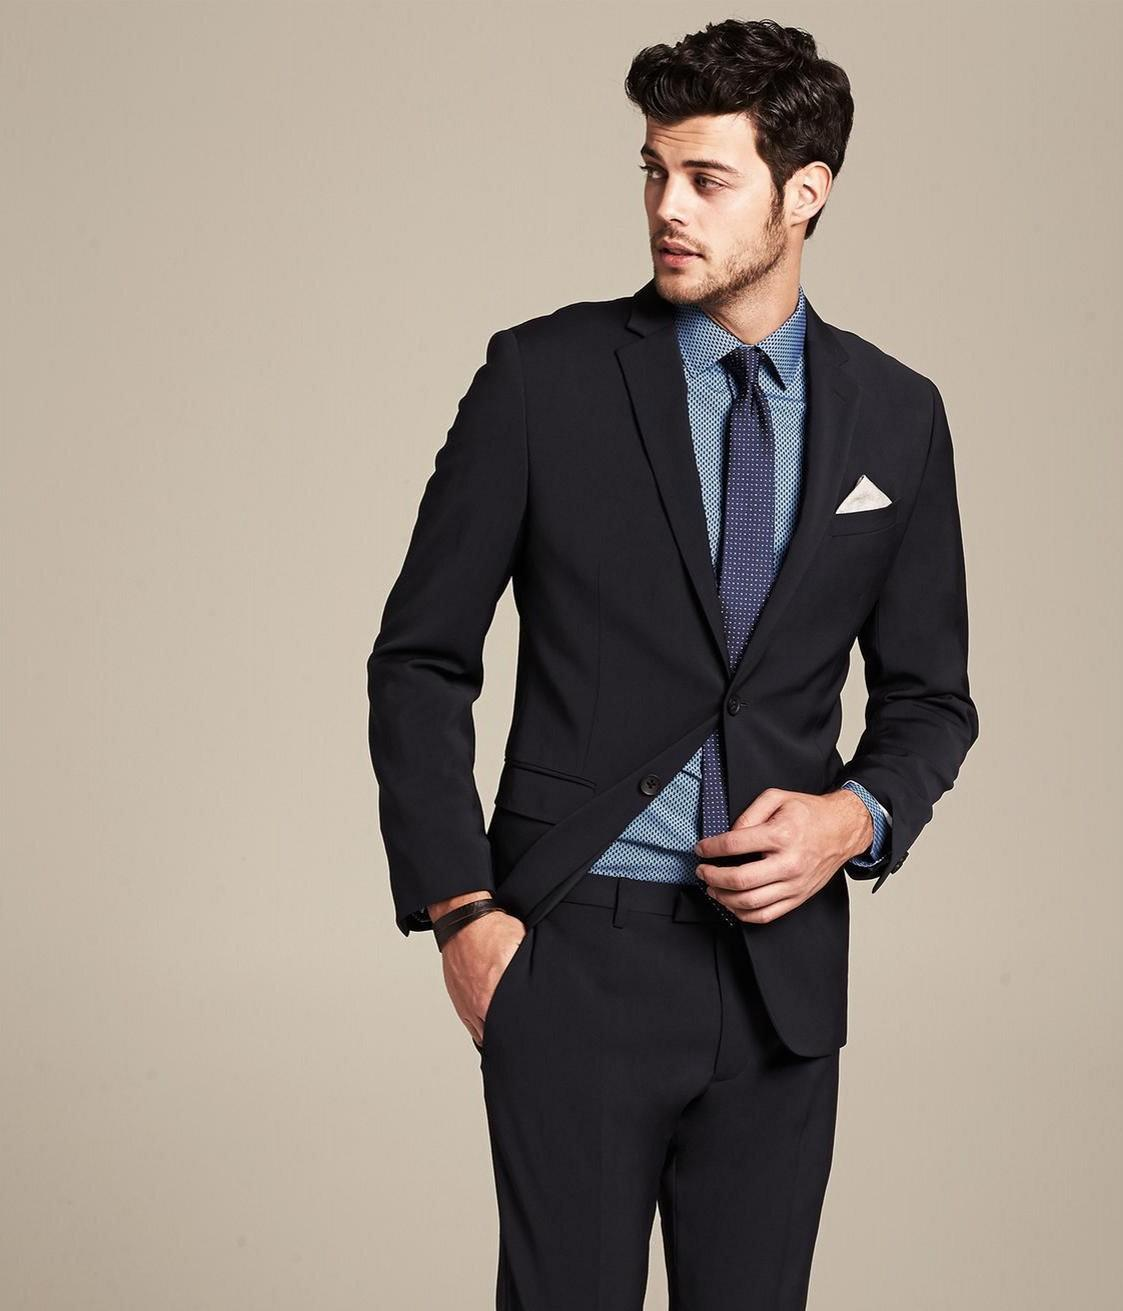 2015 new arrival suit black man pants formal wear for men